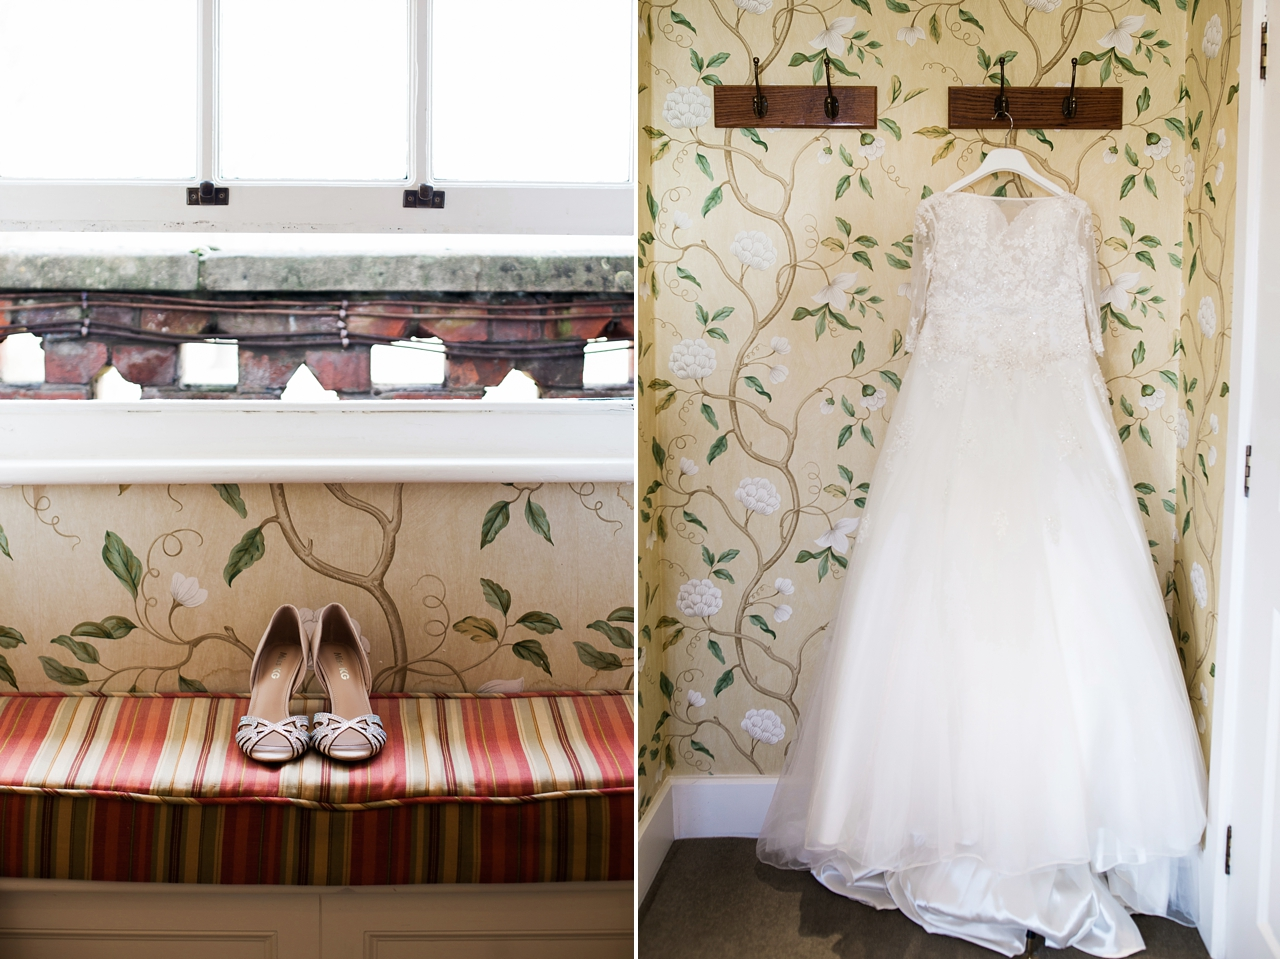 Bridal prep at the Elvetham of bridal shoes and wedding dress